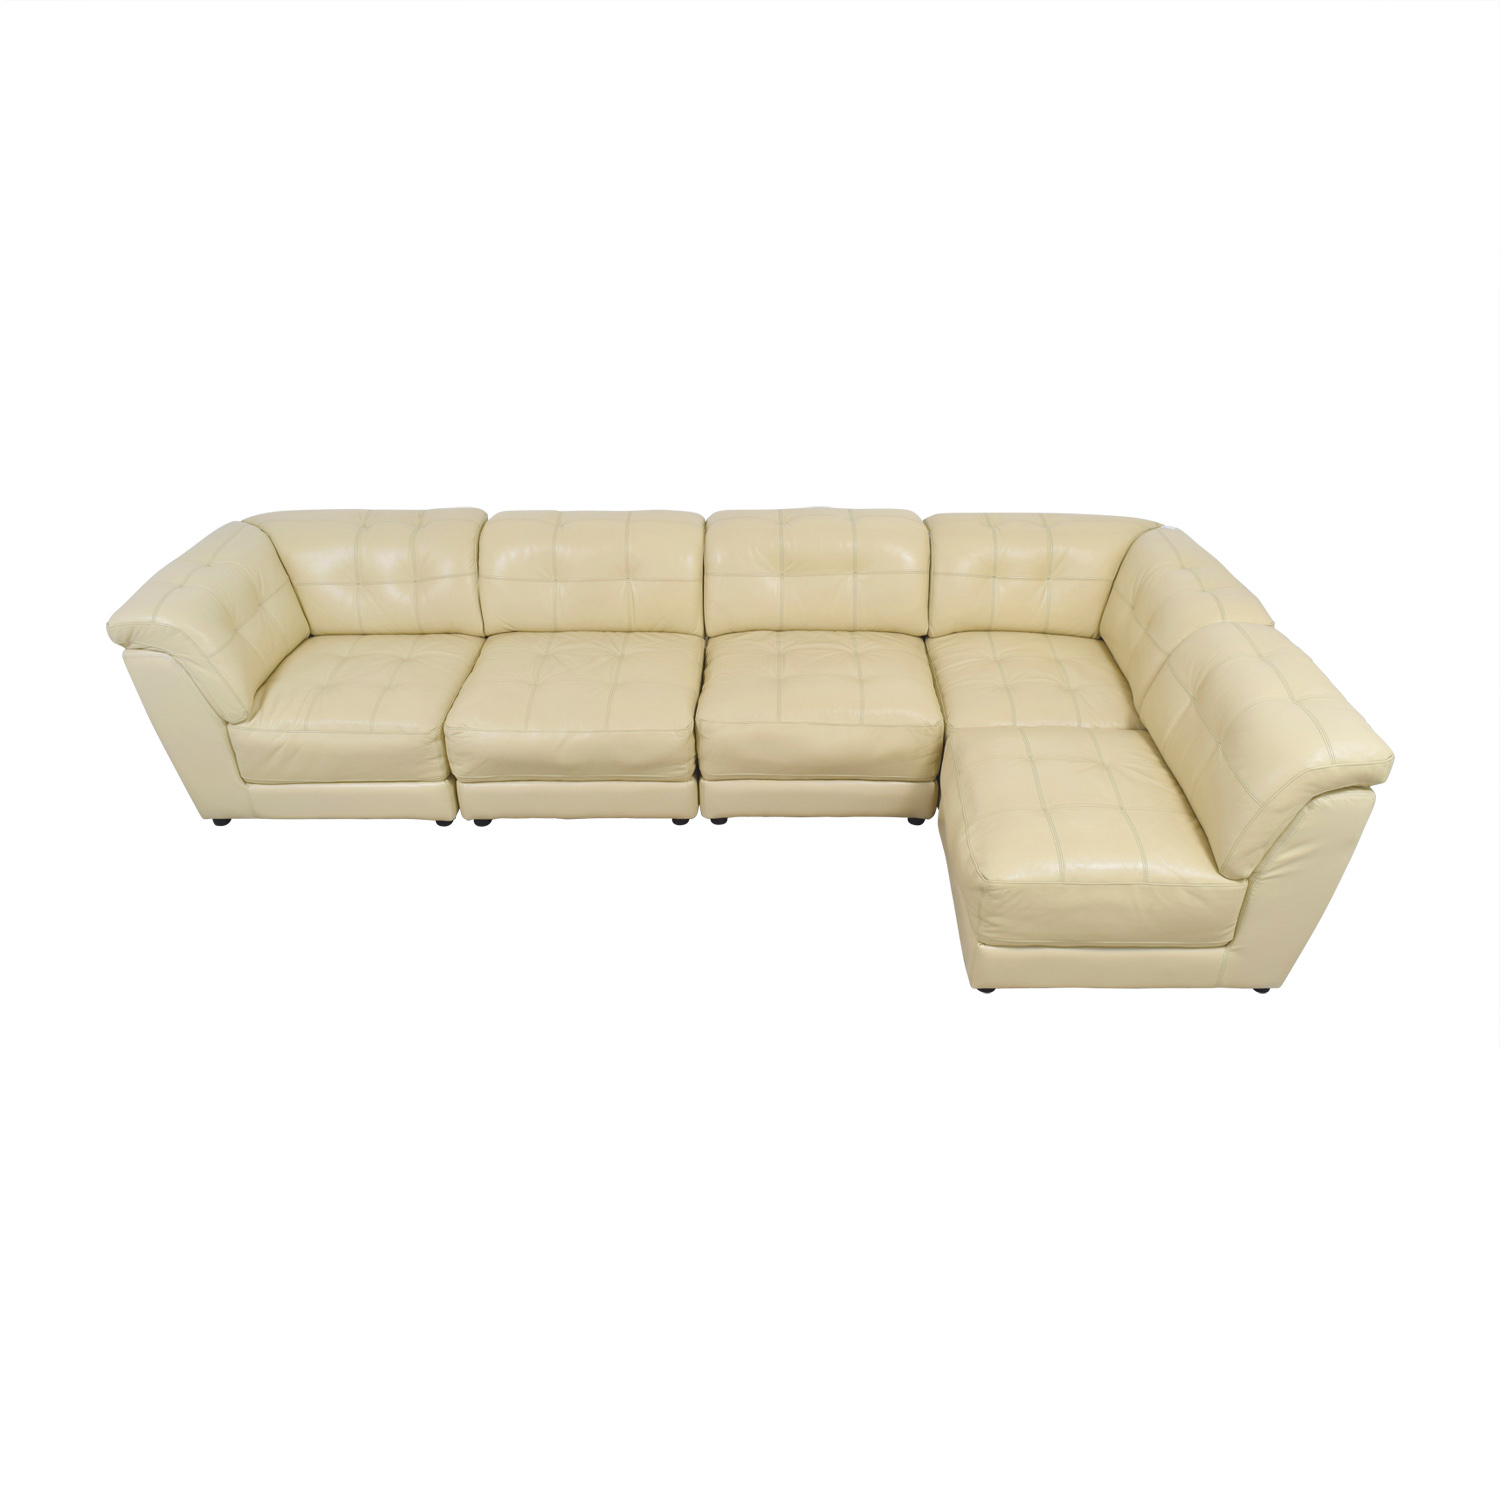 Raymour & Flanigan Raymour & Flanigan Leather Sectional discount